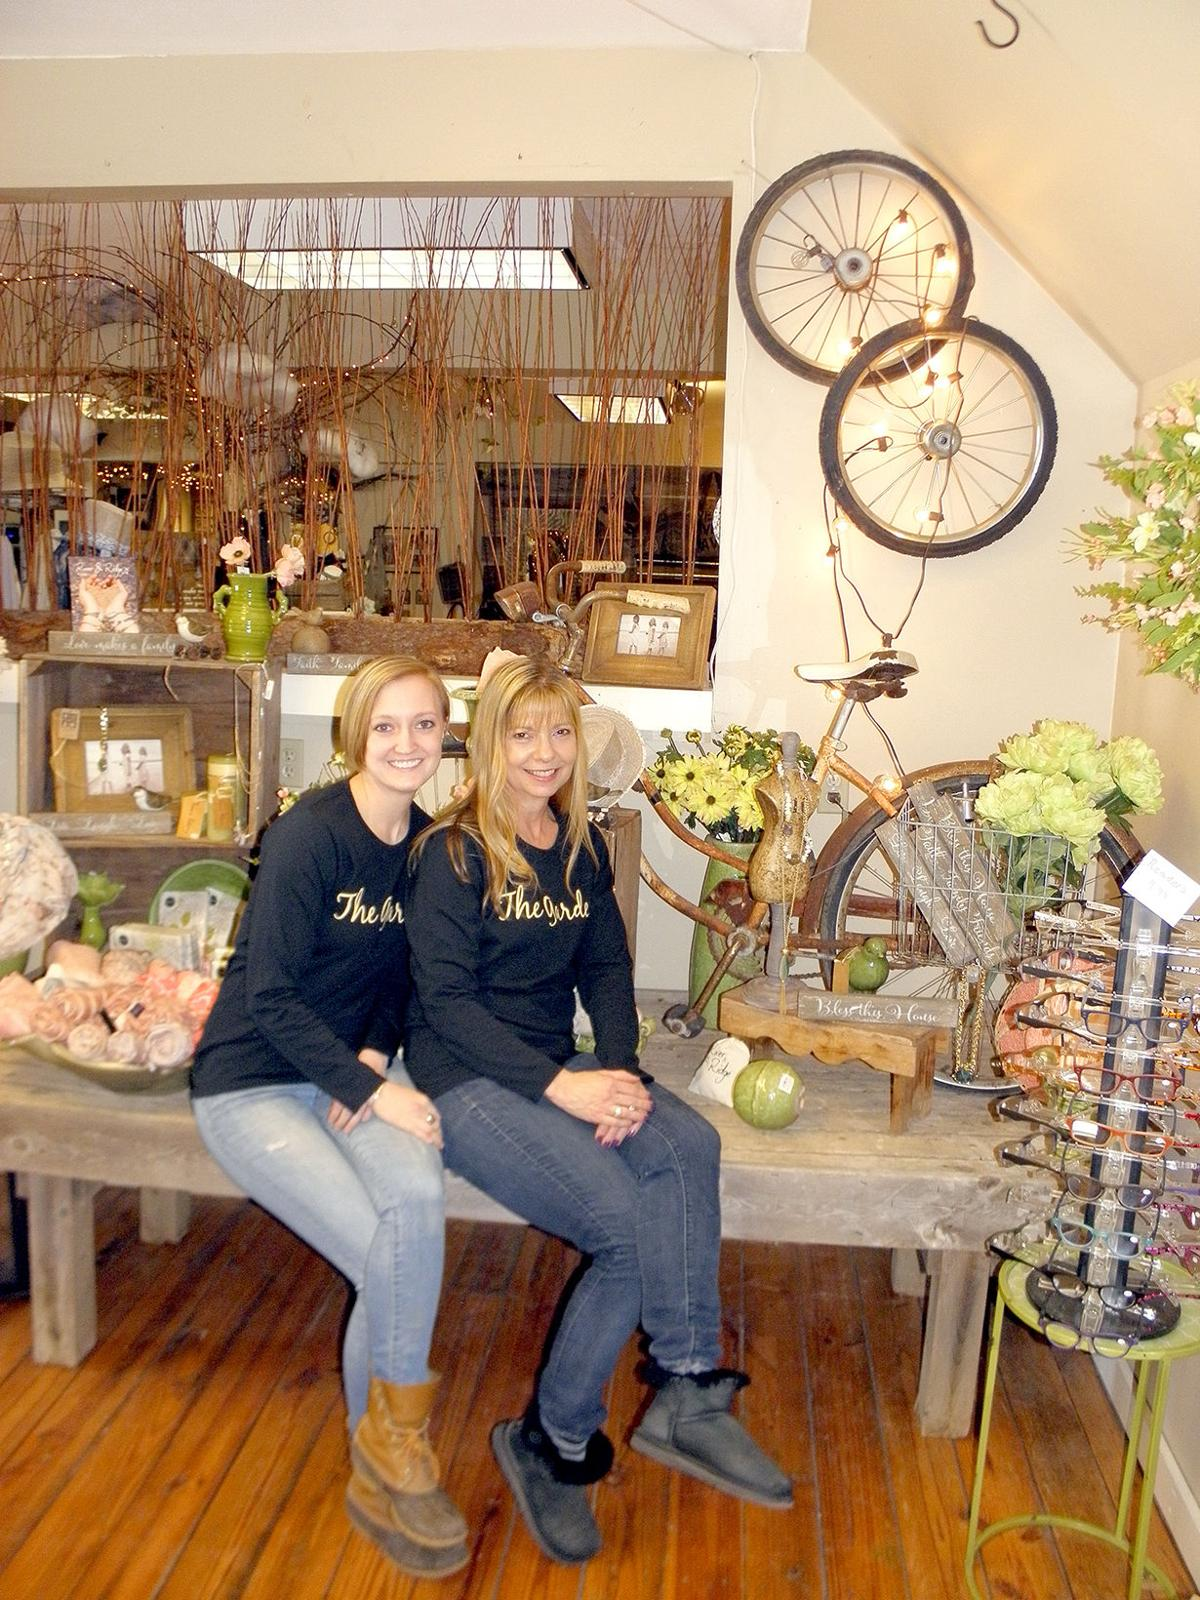 At The Garden: Indoor Shop Offers Even More | Local Business ...